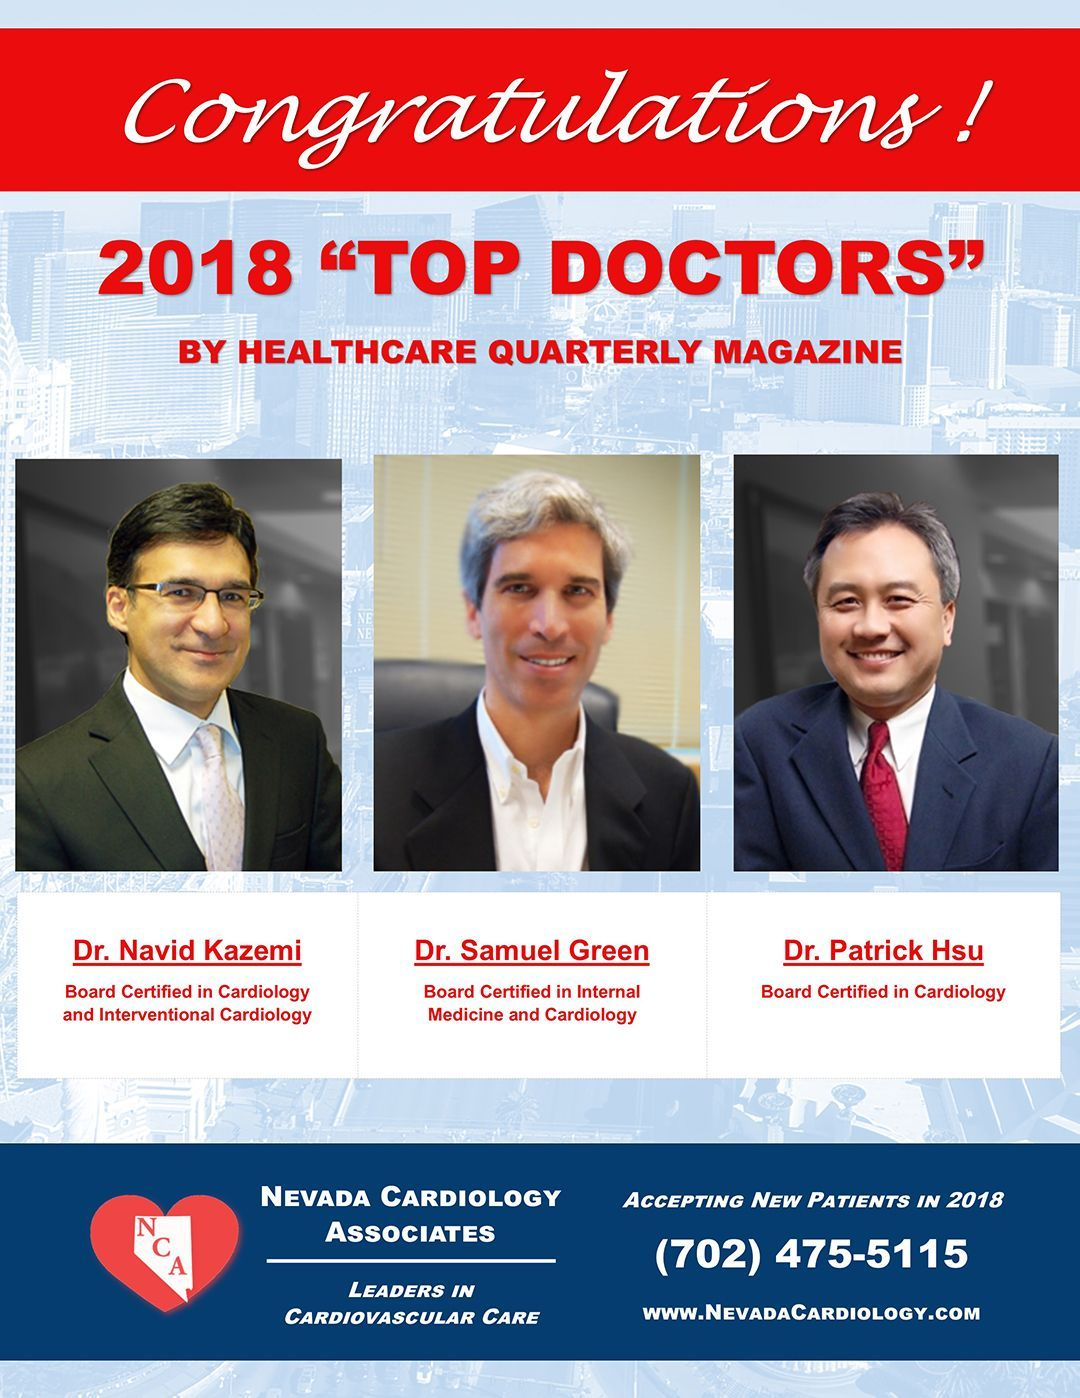 Congratulations to Dr. Kazemi, Dr Green, and Dr. Hsu for